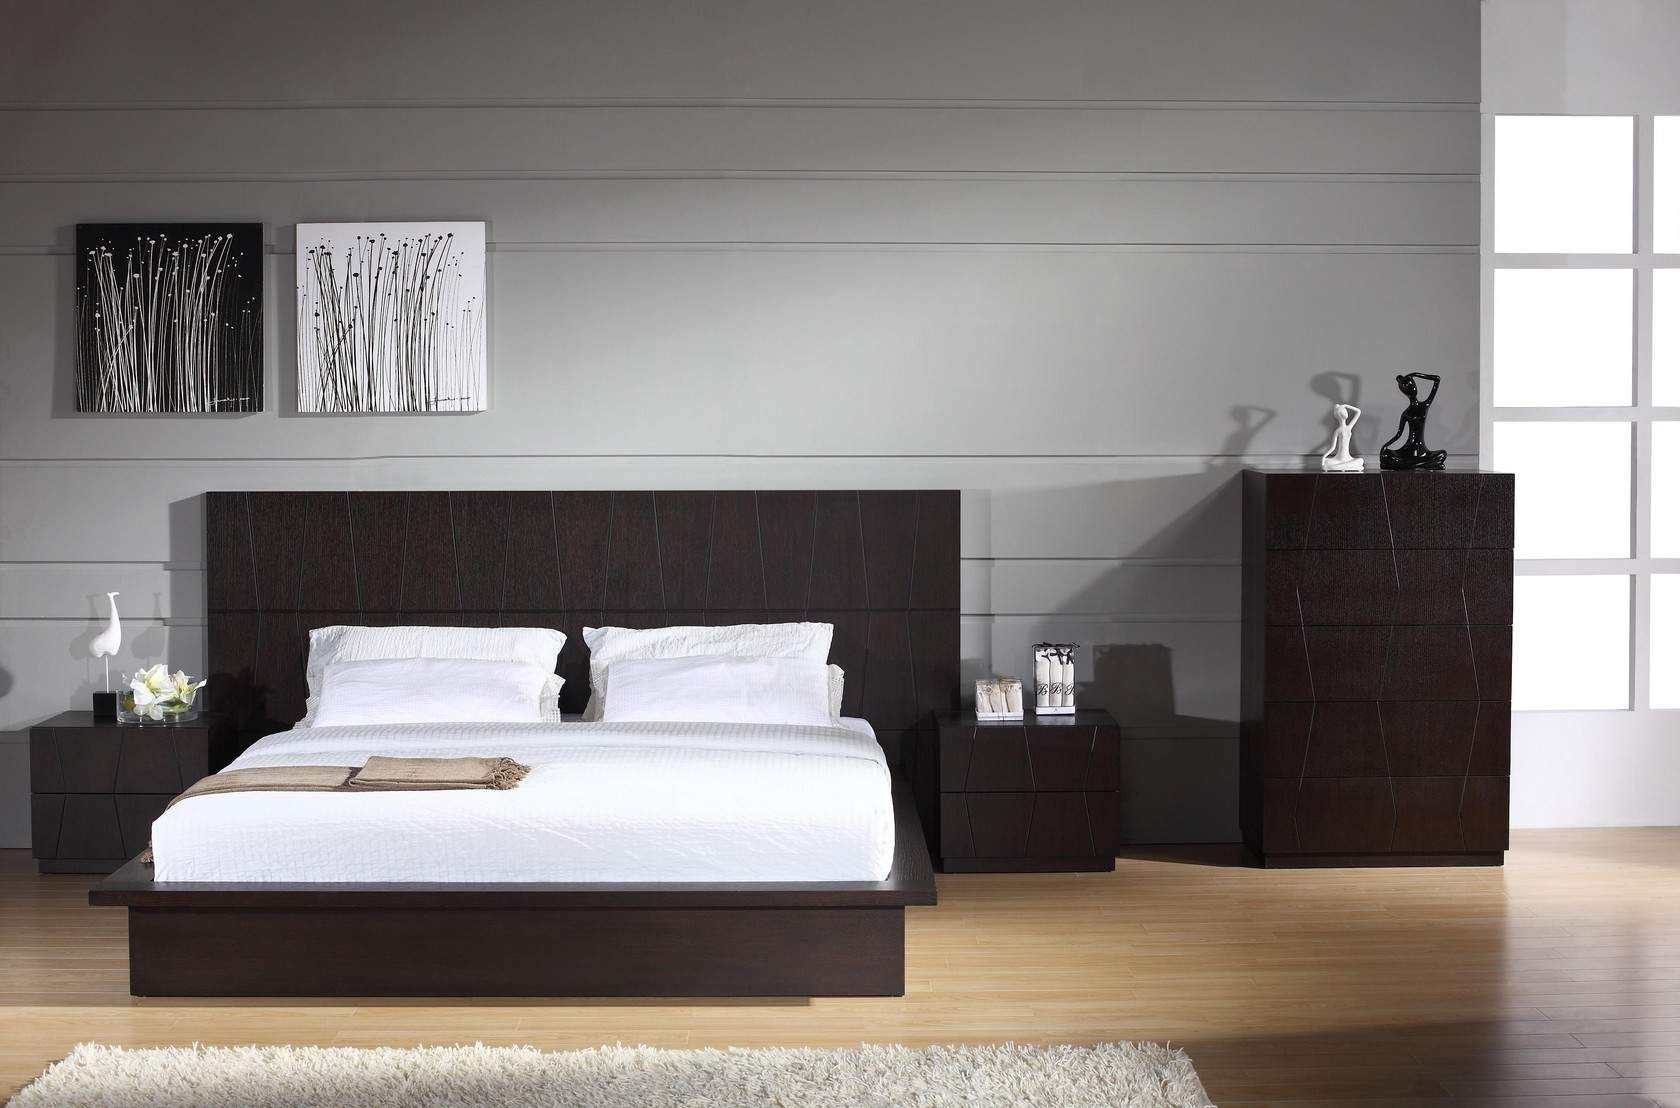 Normal Bedroom Designs normal bedroom decor furnishings with showy thought - http://www